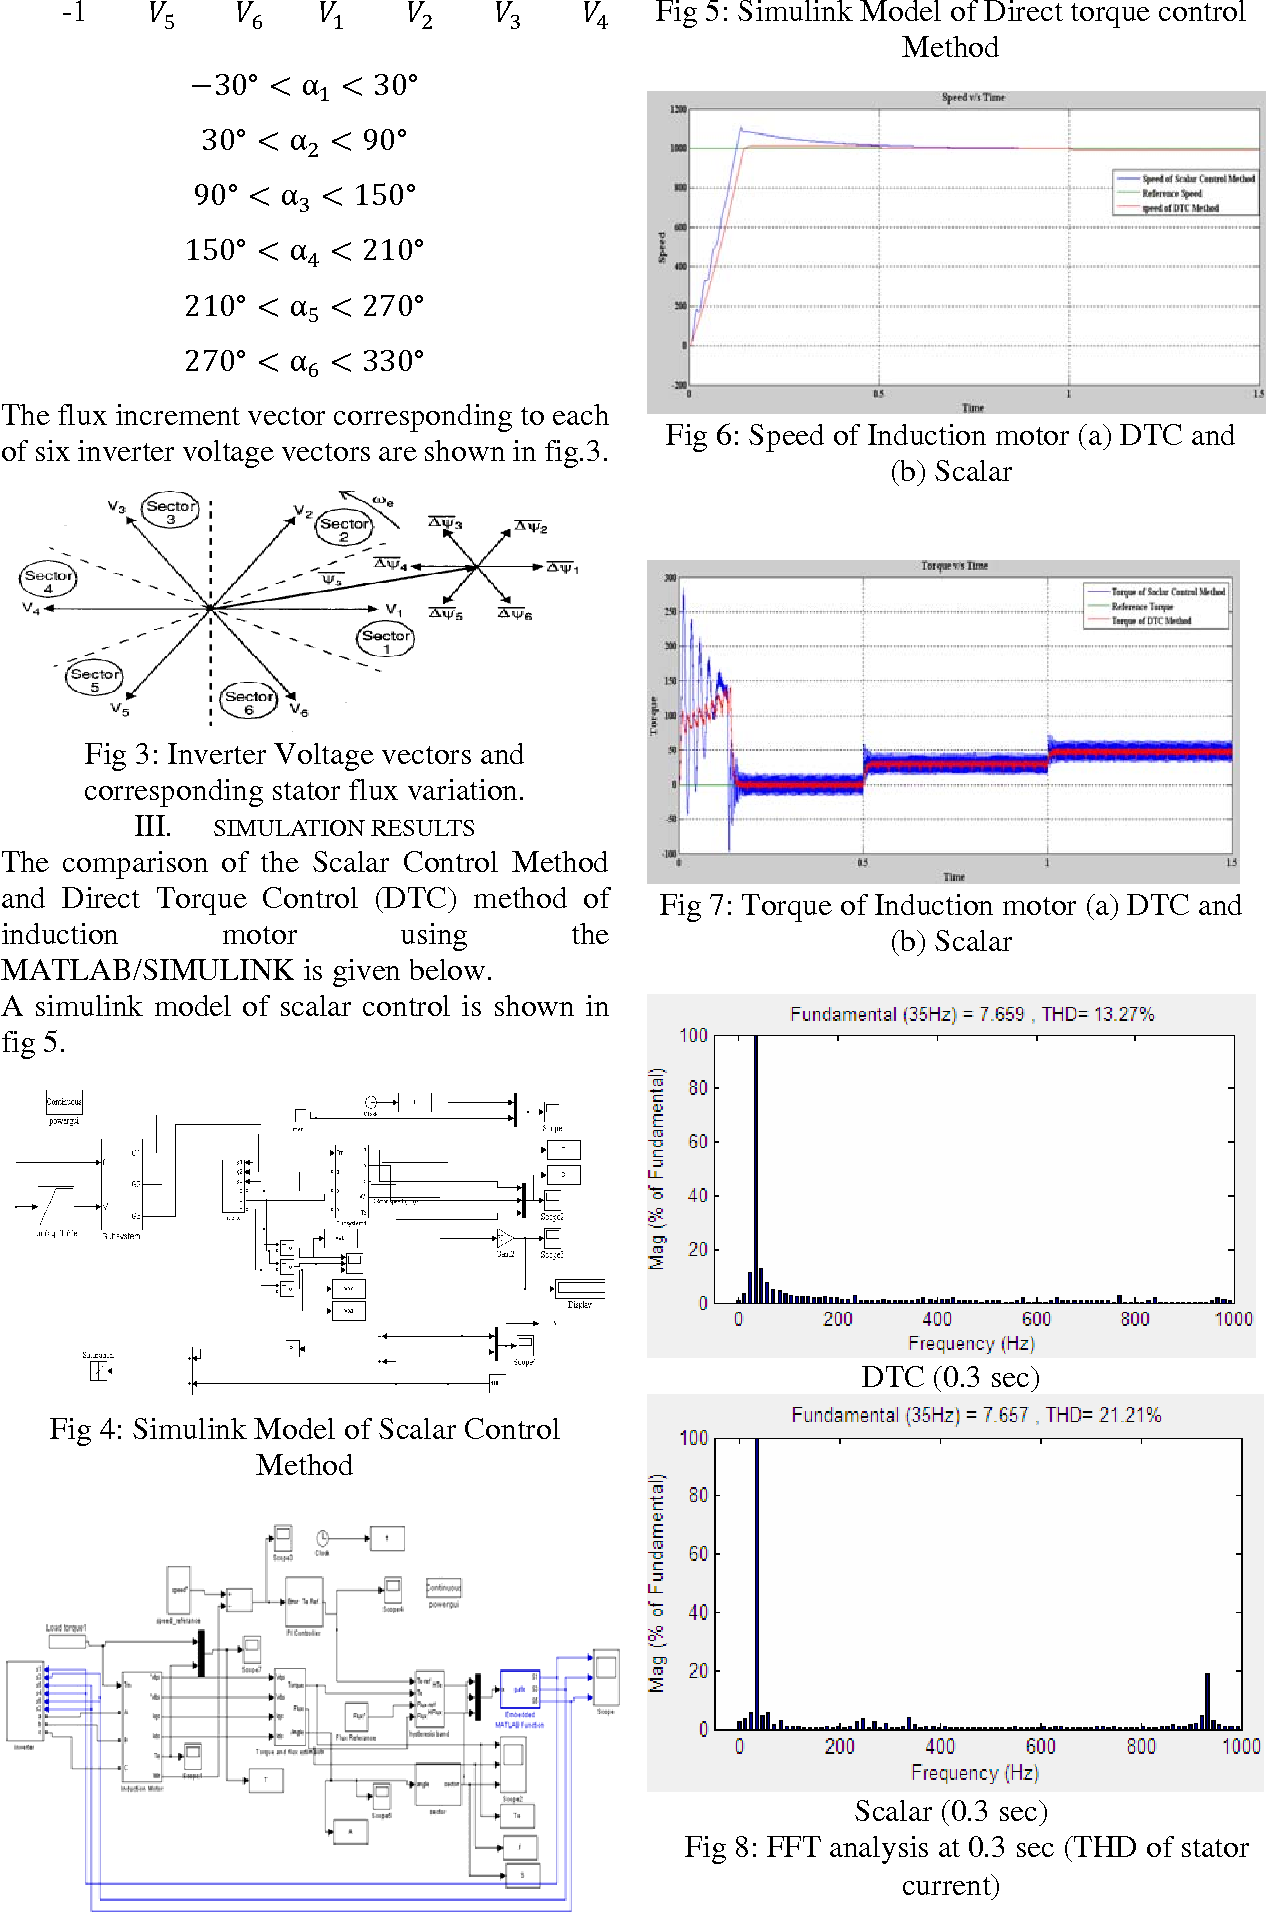 PDF] COMPARATIVE ANALYSIS BETWEEN SCALAR CONTROL AND DIRECT TORQUE